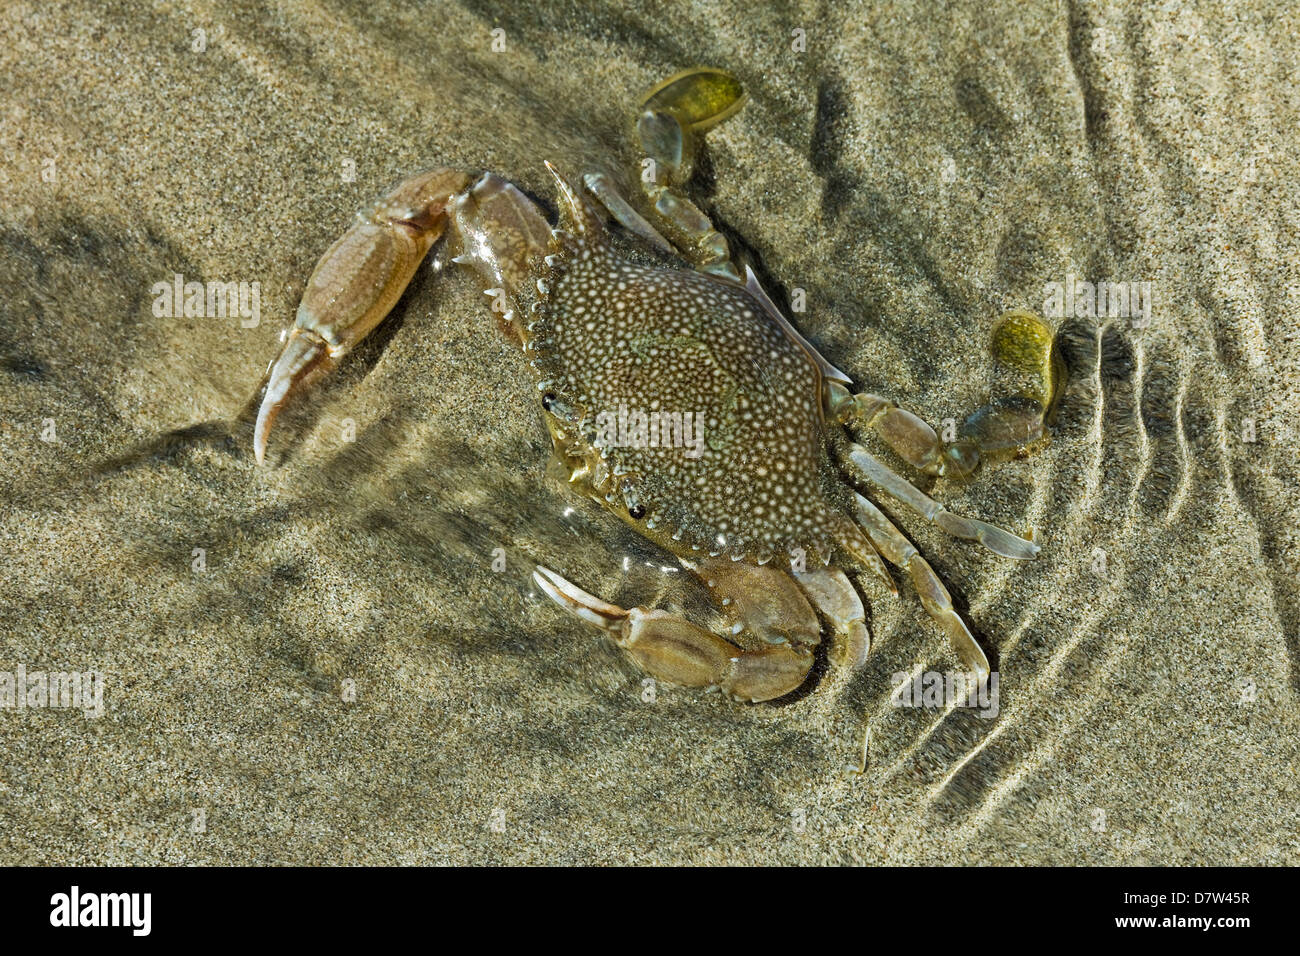 Superbly camouflaged crab on Playa Guiones beach, Nosara, Nicoya Peninsula, Guanacaste Province, Costa Rica - Stock Image